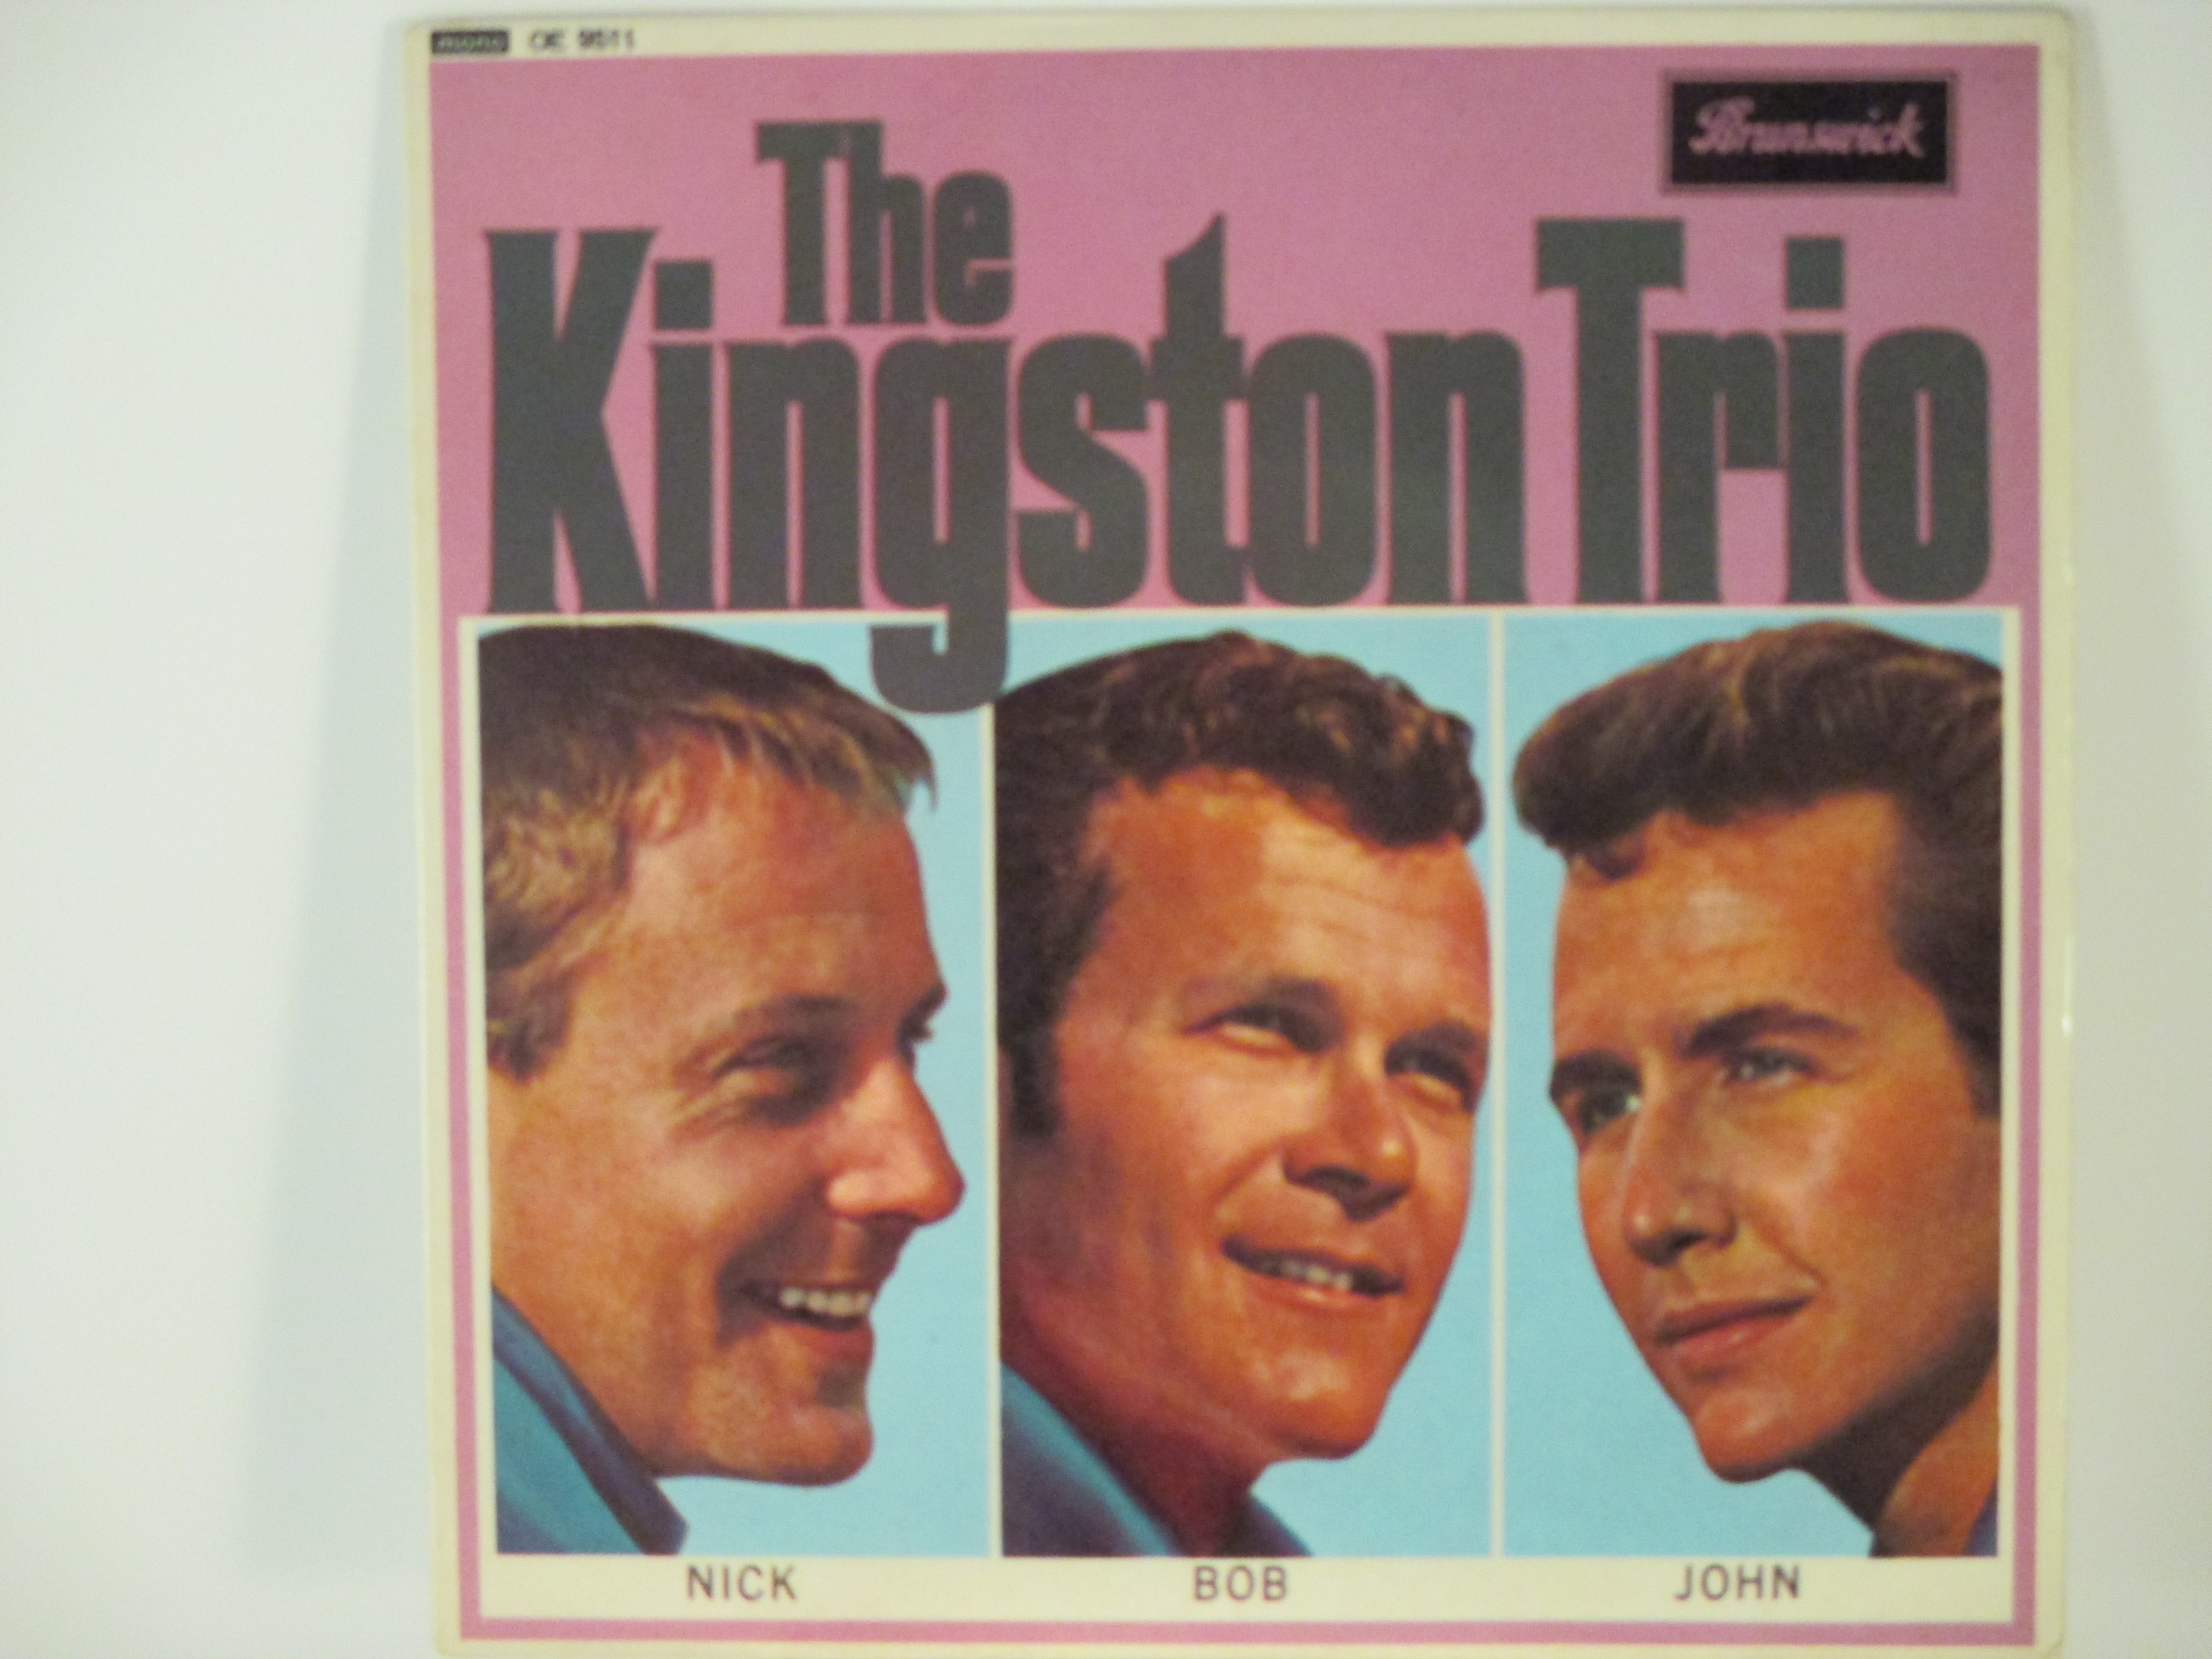 KINGSTON TRIO : (EP) I'm goin' home / Farewell / My ramblin' boy / Little play soldiers